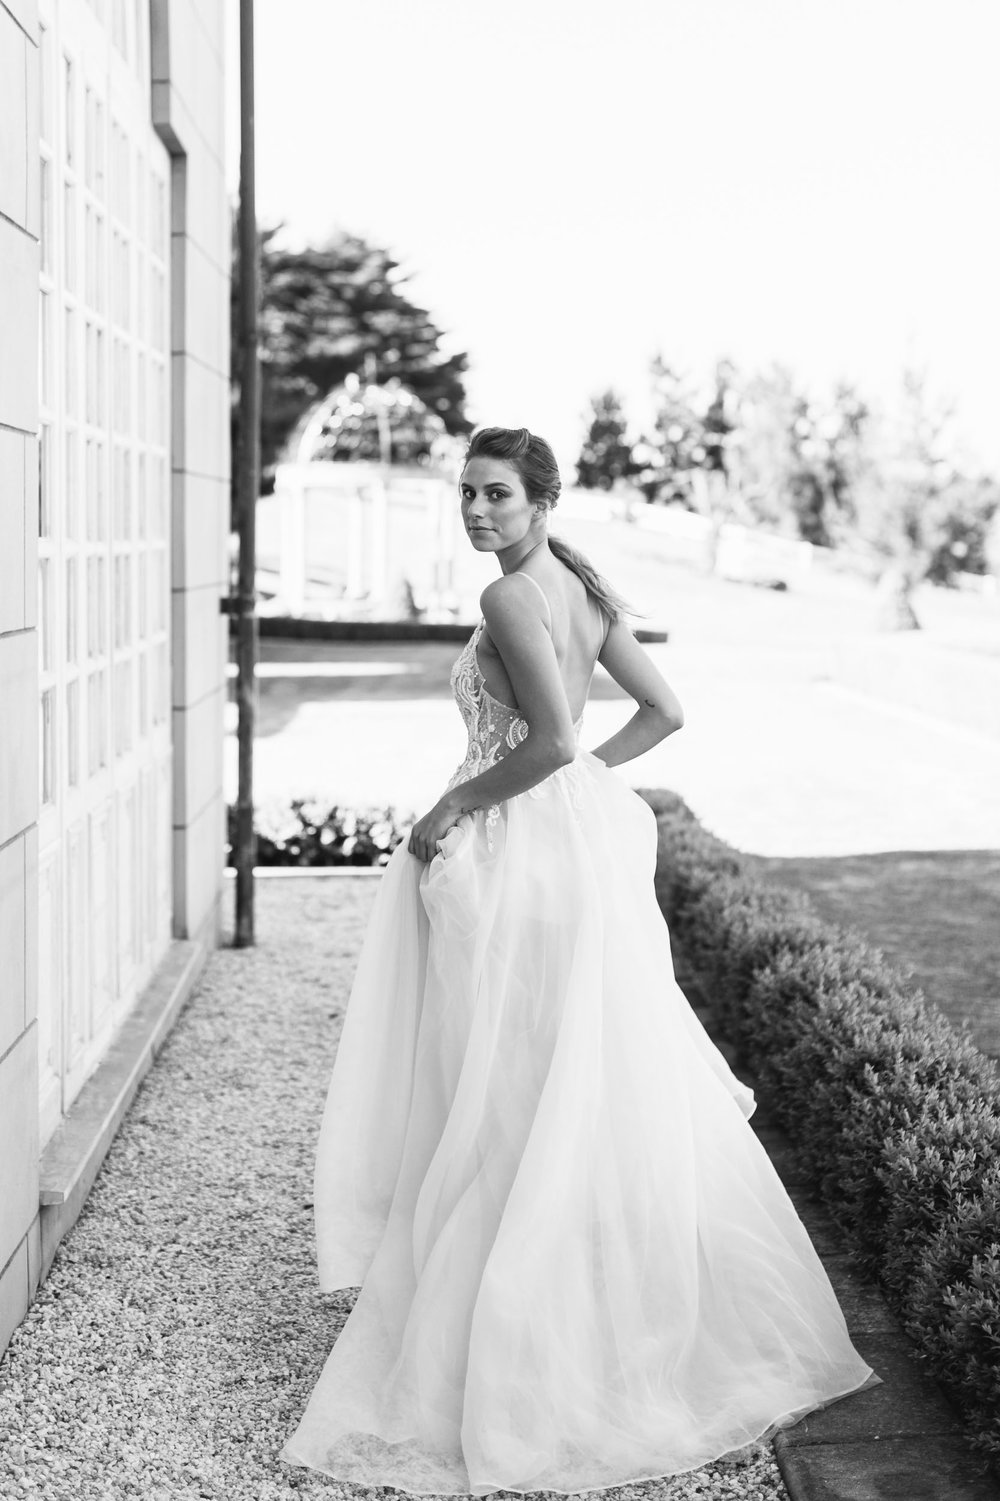 Berta Bride Back and White Wedding Photo | Wedding Photography by Kas Richards